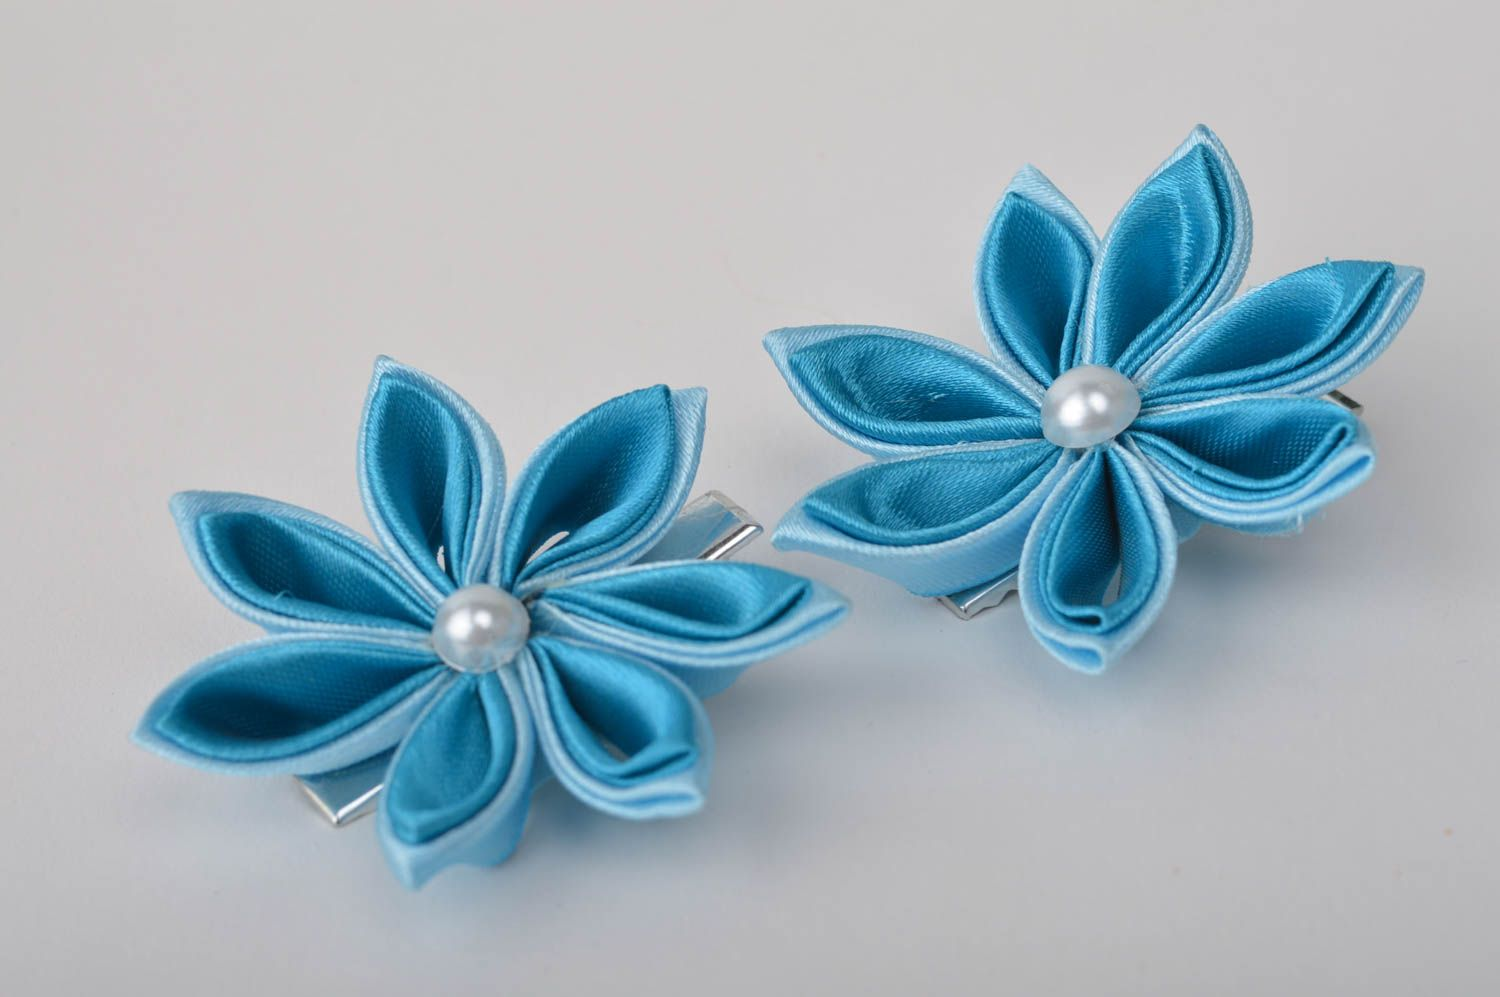 Handcrafted jewelry set 2 flower hair clips kanzashi flowers gifts for kids photo 7